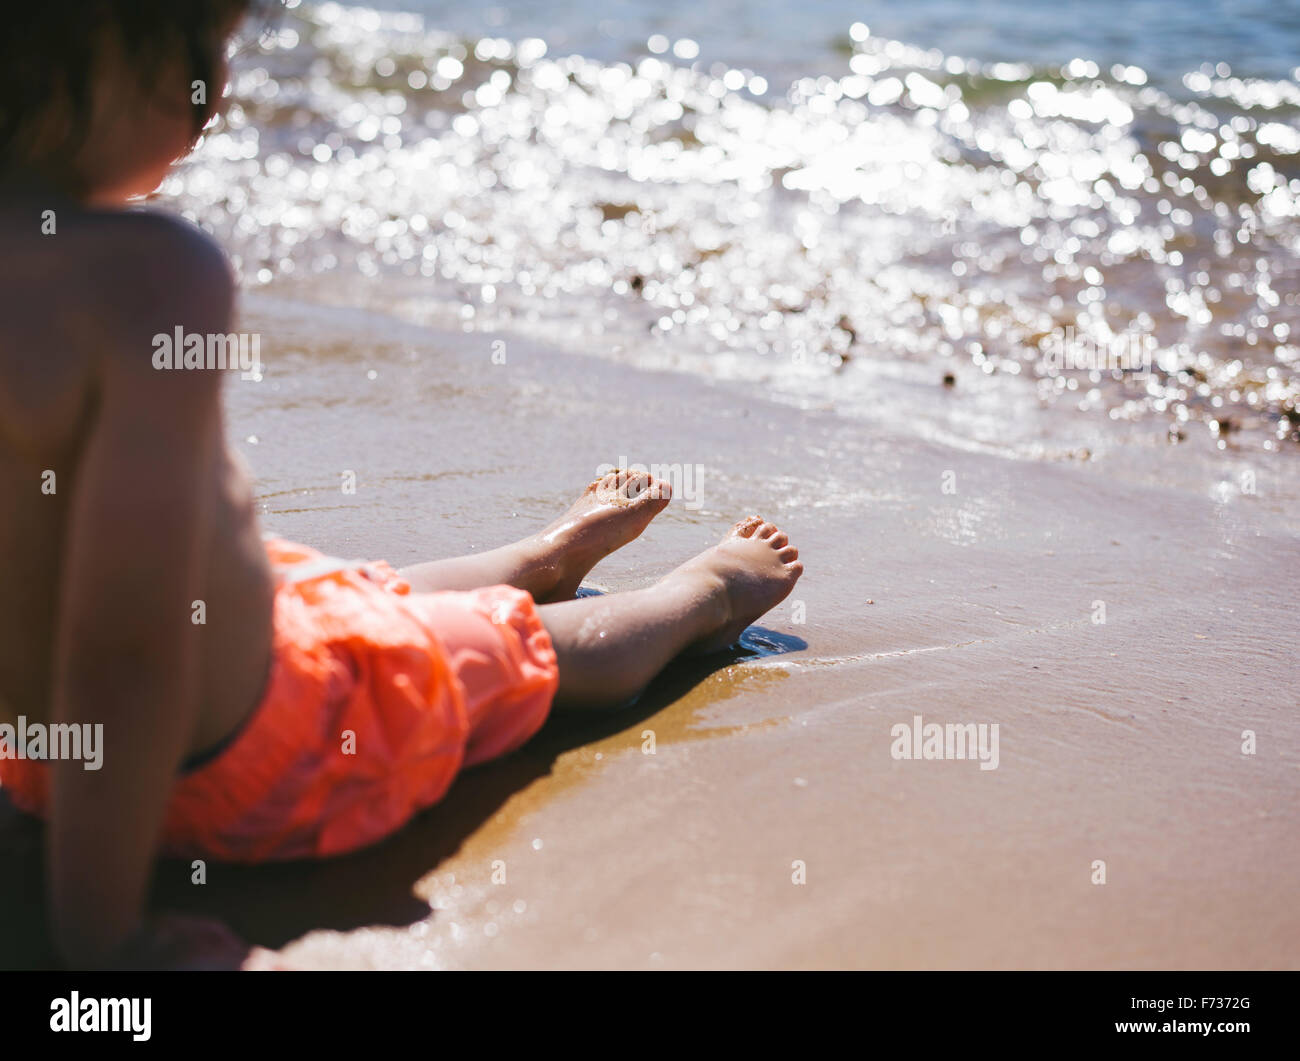 A boy sitting on the sand at the water's edge watching the waves reach the beach. - Stock Image